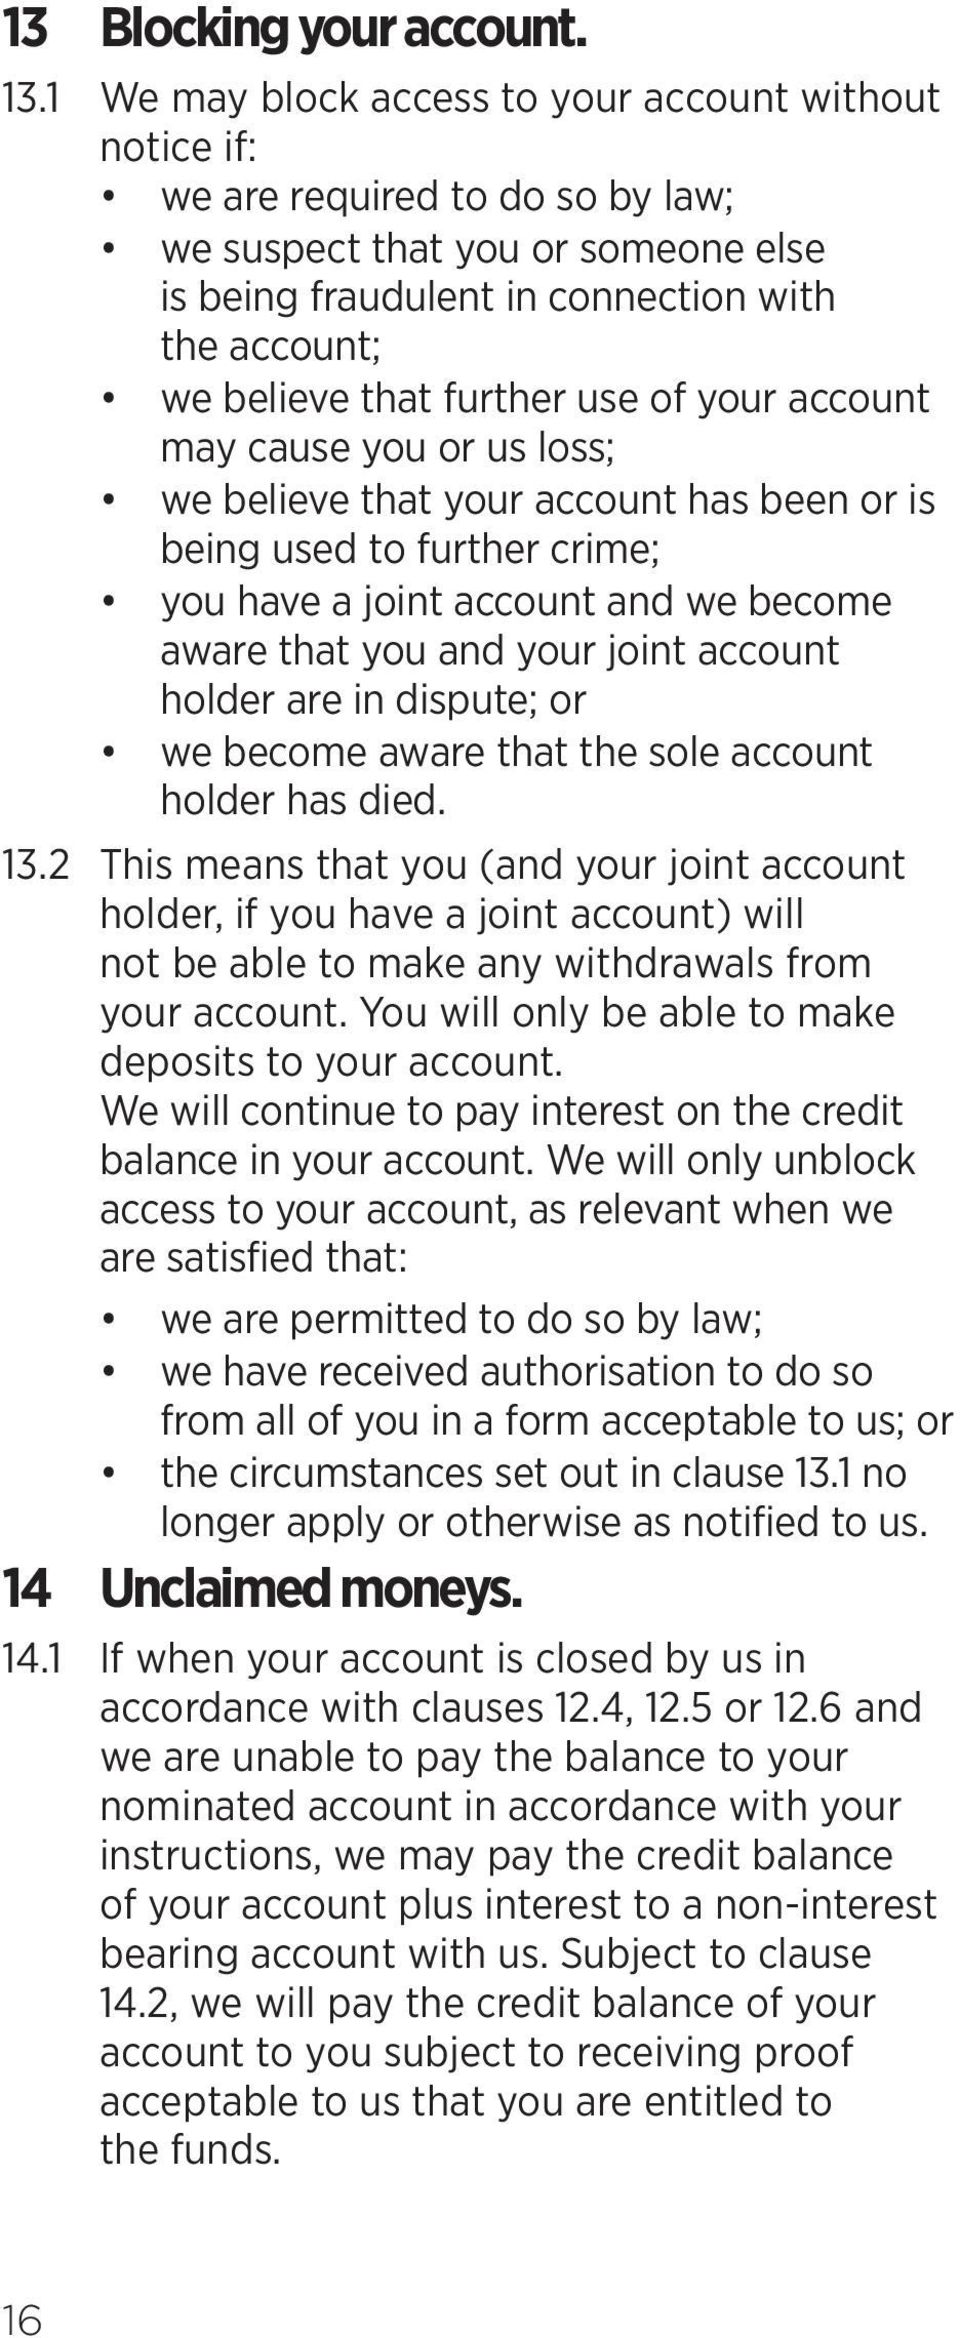 further use of your account may cause you or us loss; we believe that your account has been or is being used to further crime; you have a joint account and we become aware that you and your joint